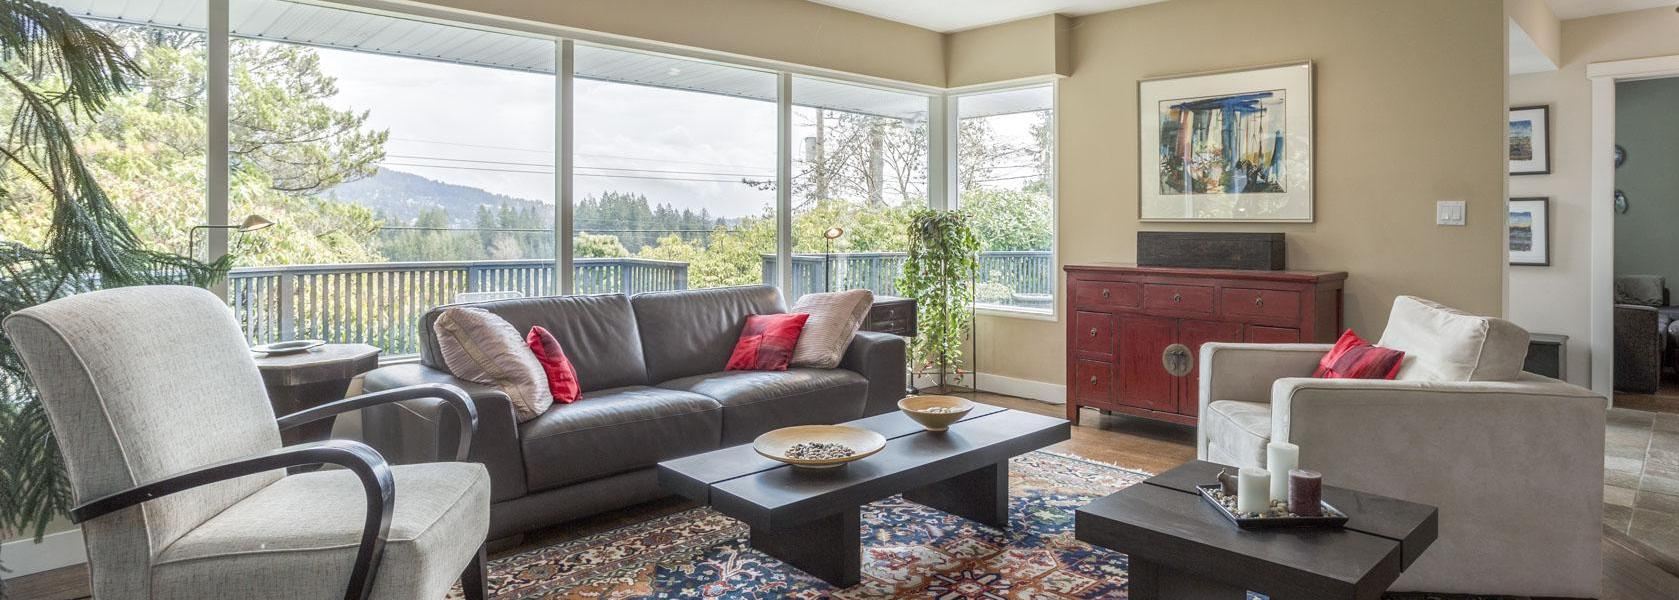 95 -  Bonnymuir Drive, Glenmore, West Vancouver